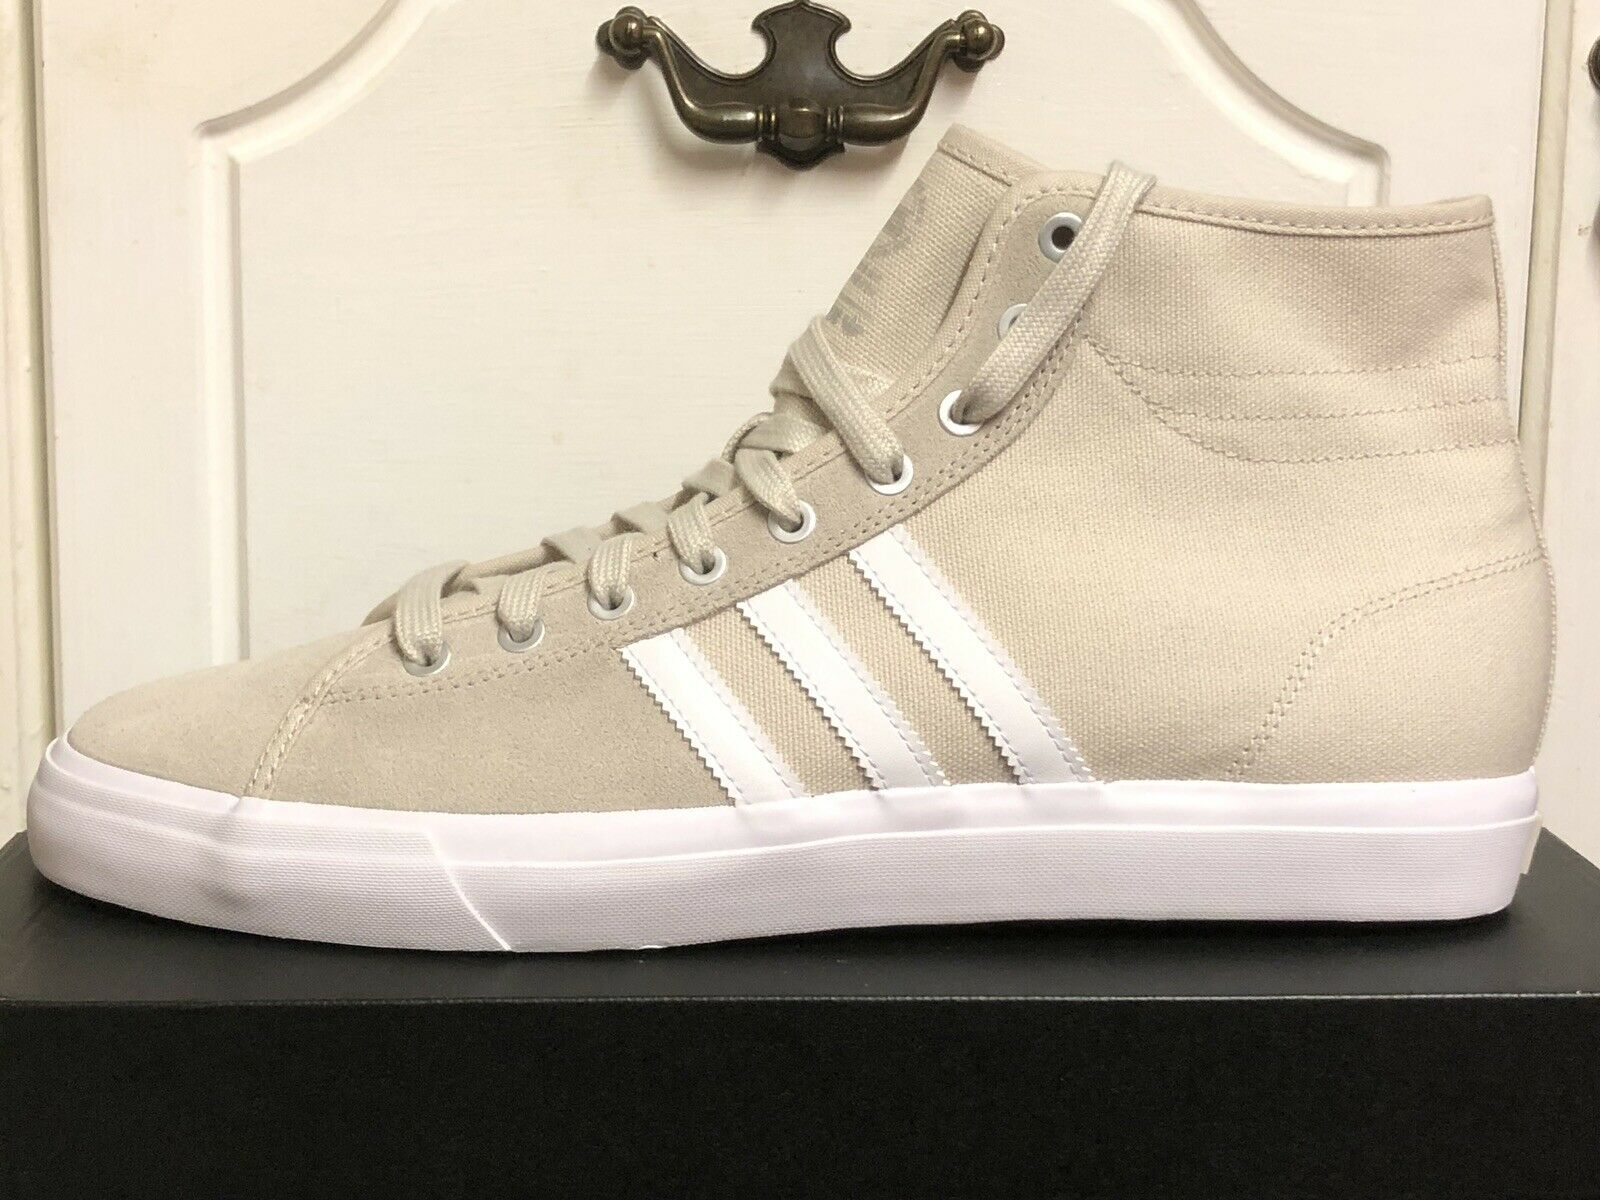 ADIDAS MATCHCOURT HIGH RX SIZE UK 13 US 13,5 EUR 48 BRAND NEW WITH TAGS NO BOX